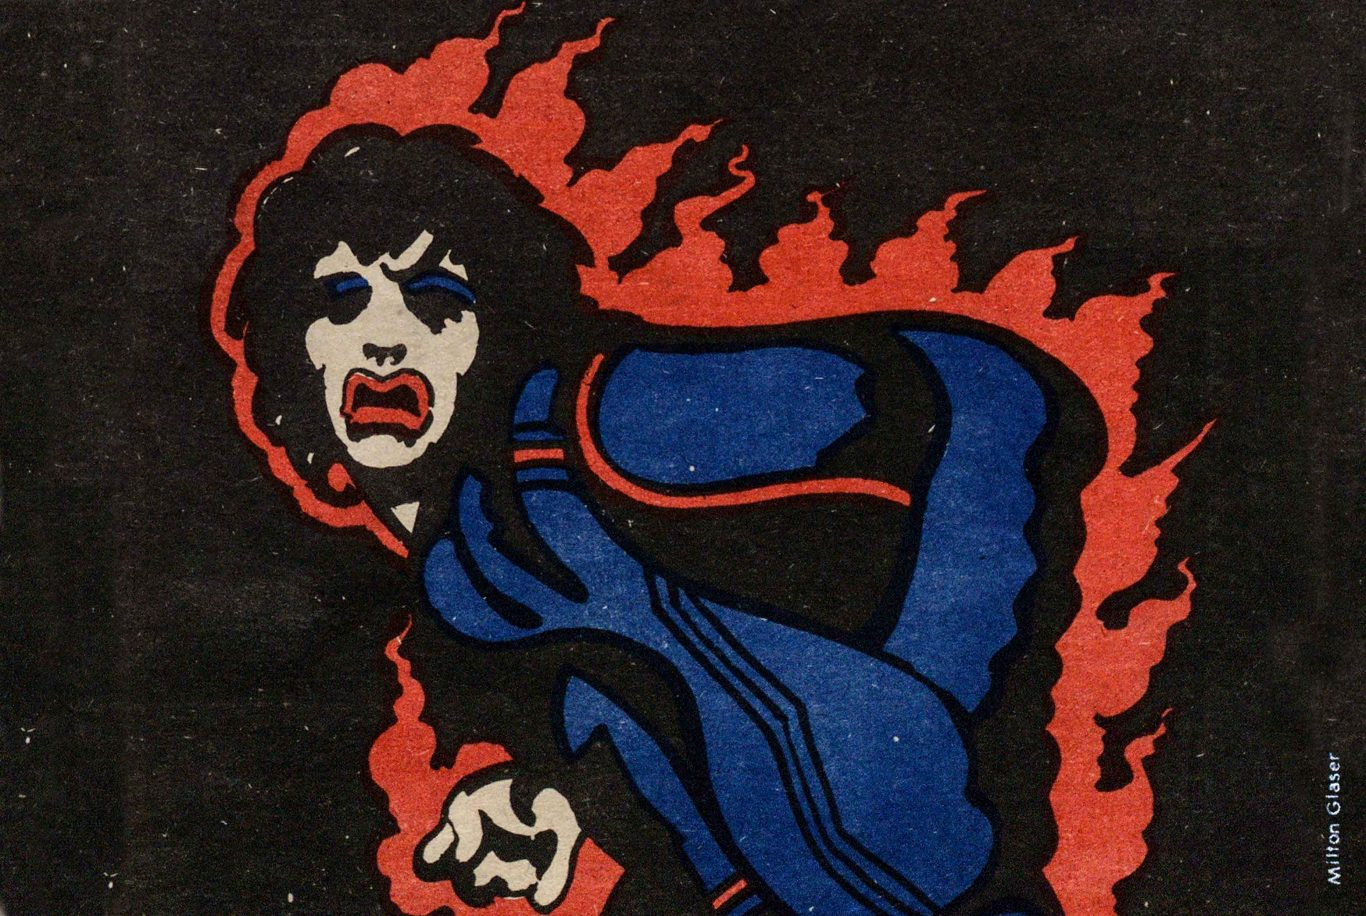 Milton Glaser illustration of Mick Jagger for the cover of the village voice